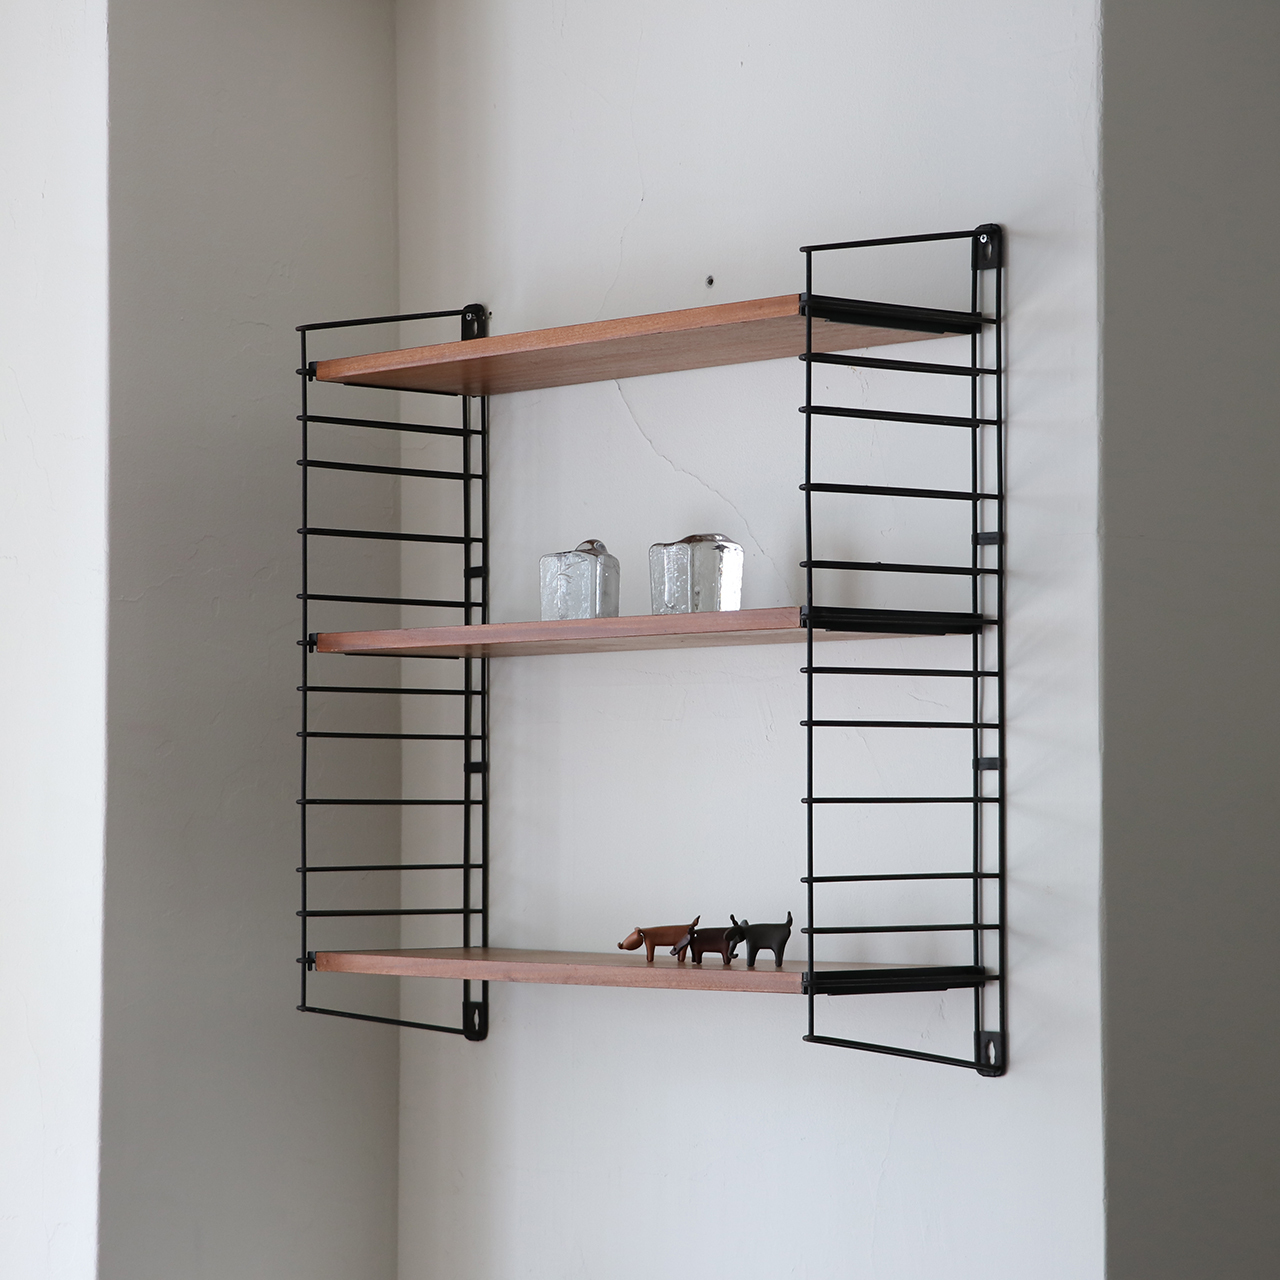 Wall shelf / A. D. Dekker for TOMADO